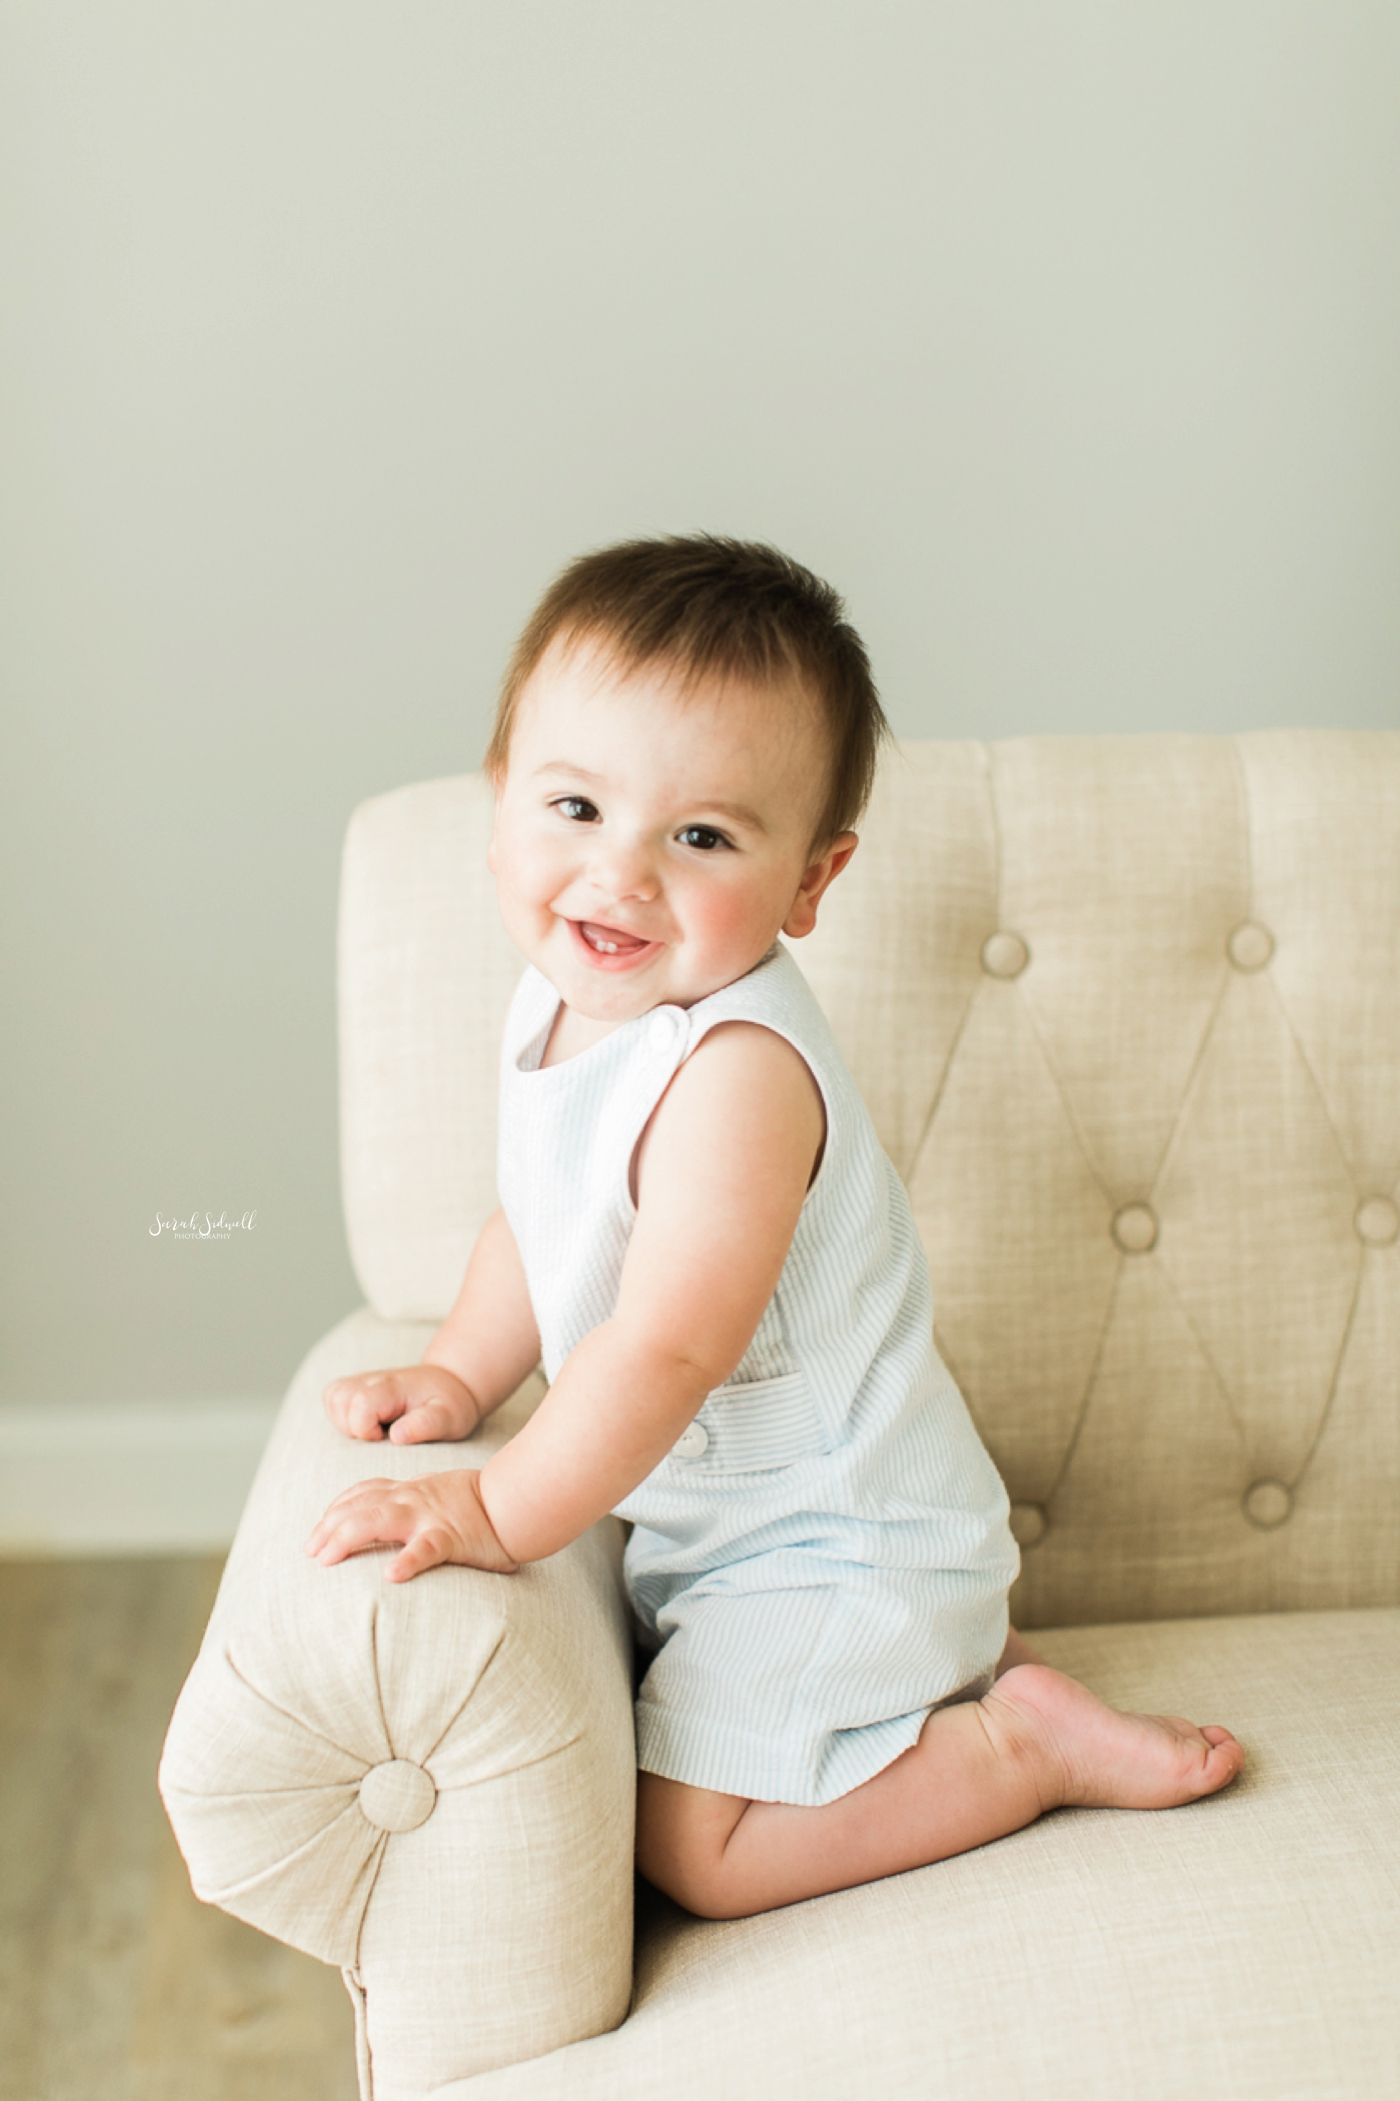 A baby boy sits on a white chair during family photography session.